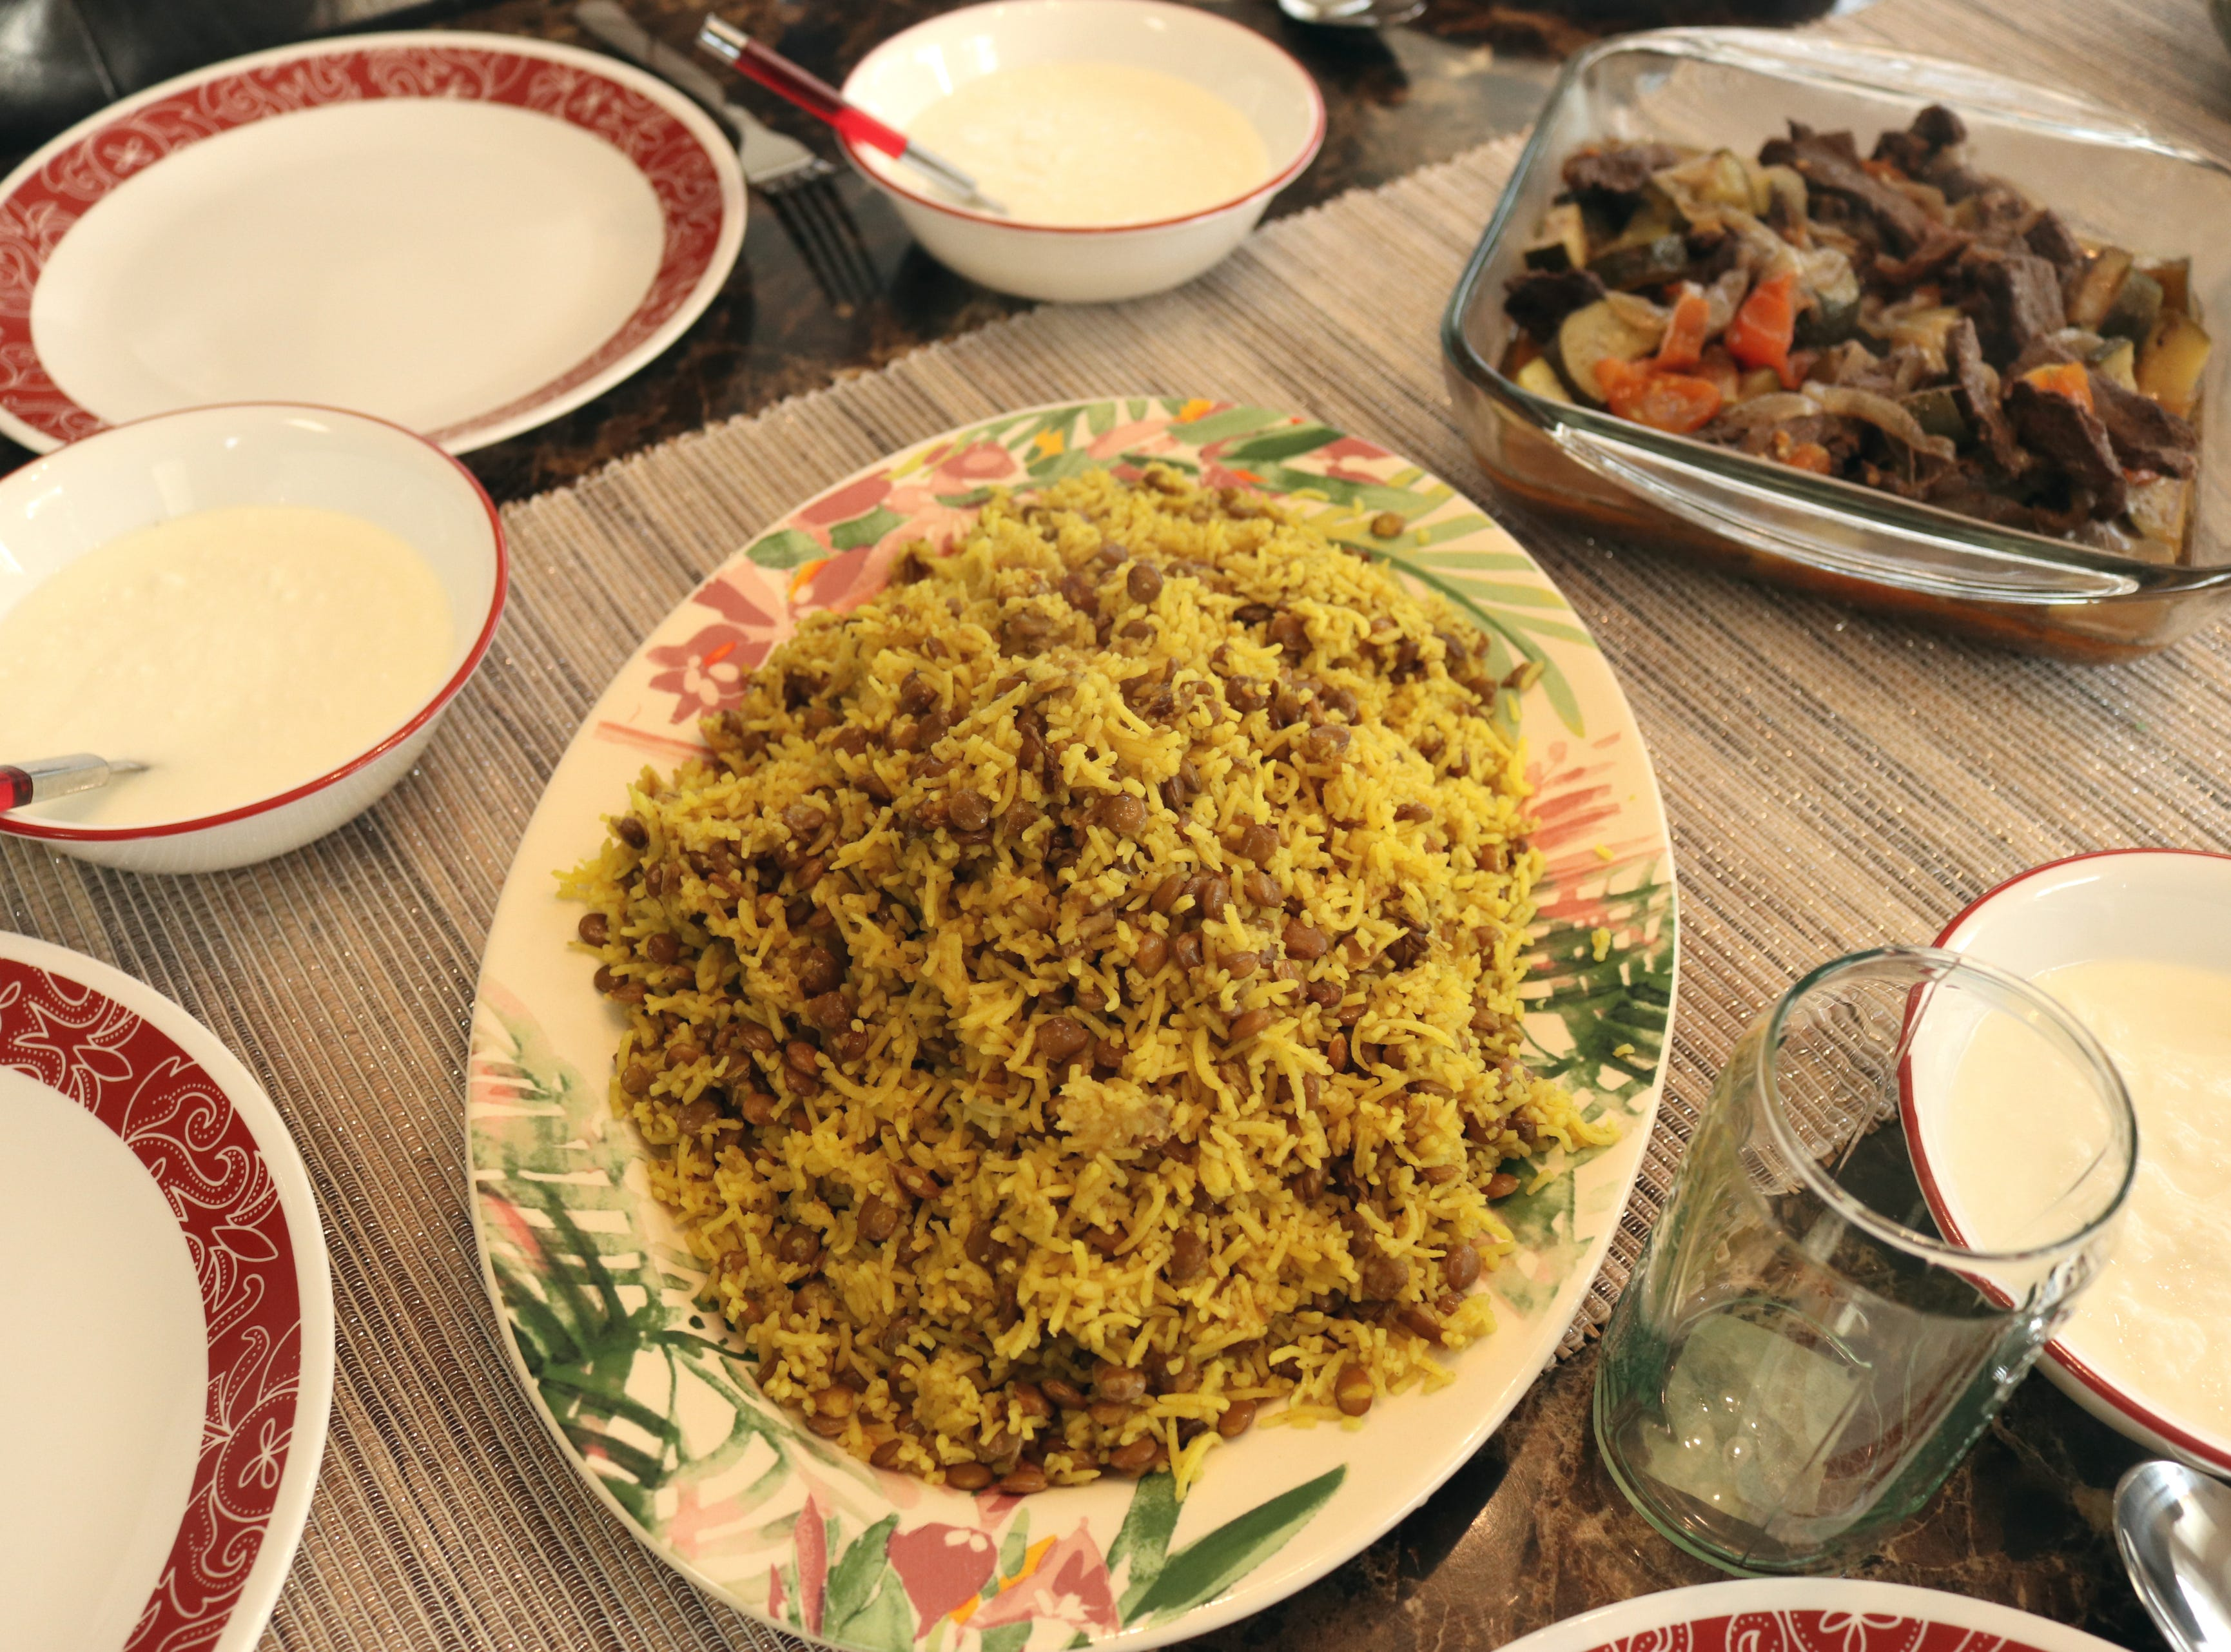 Zina Radhi served rice with lentils and seasoned beef at a Sunday night dinner with her family.